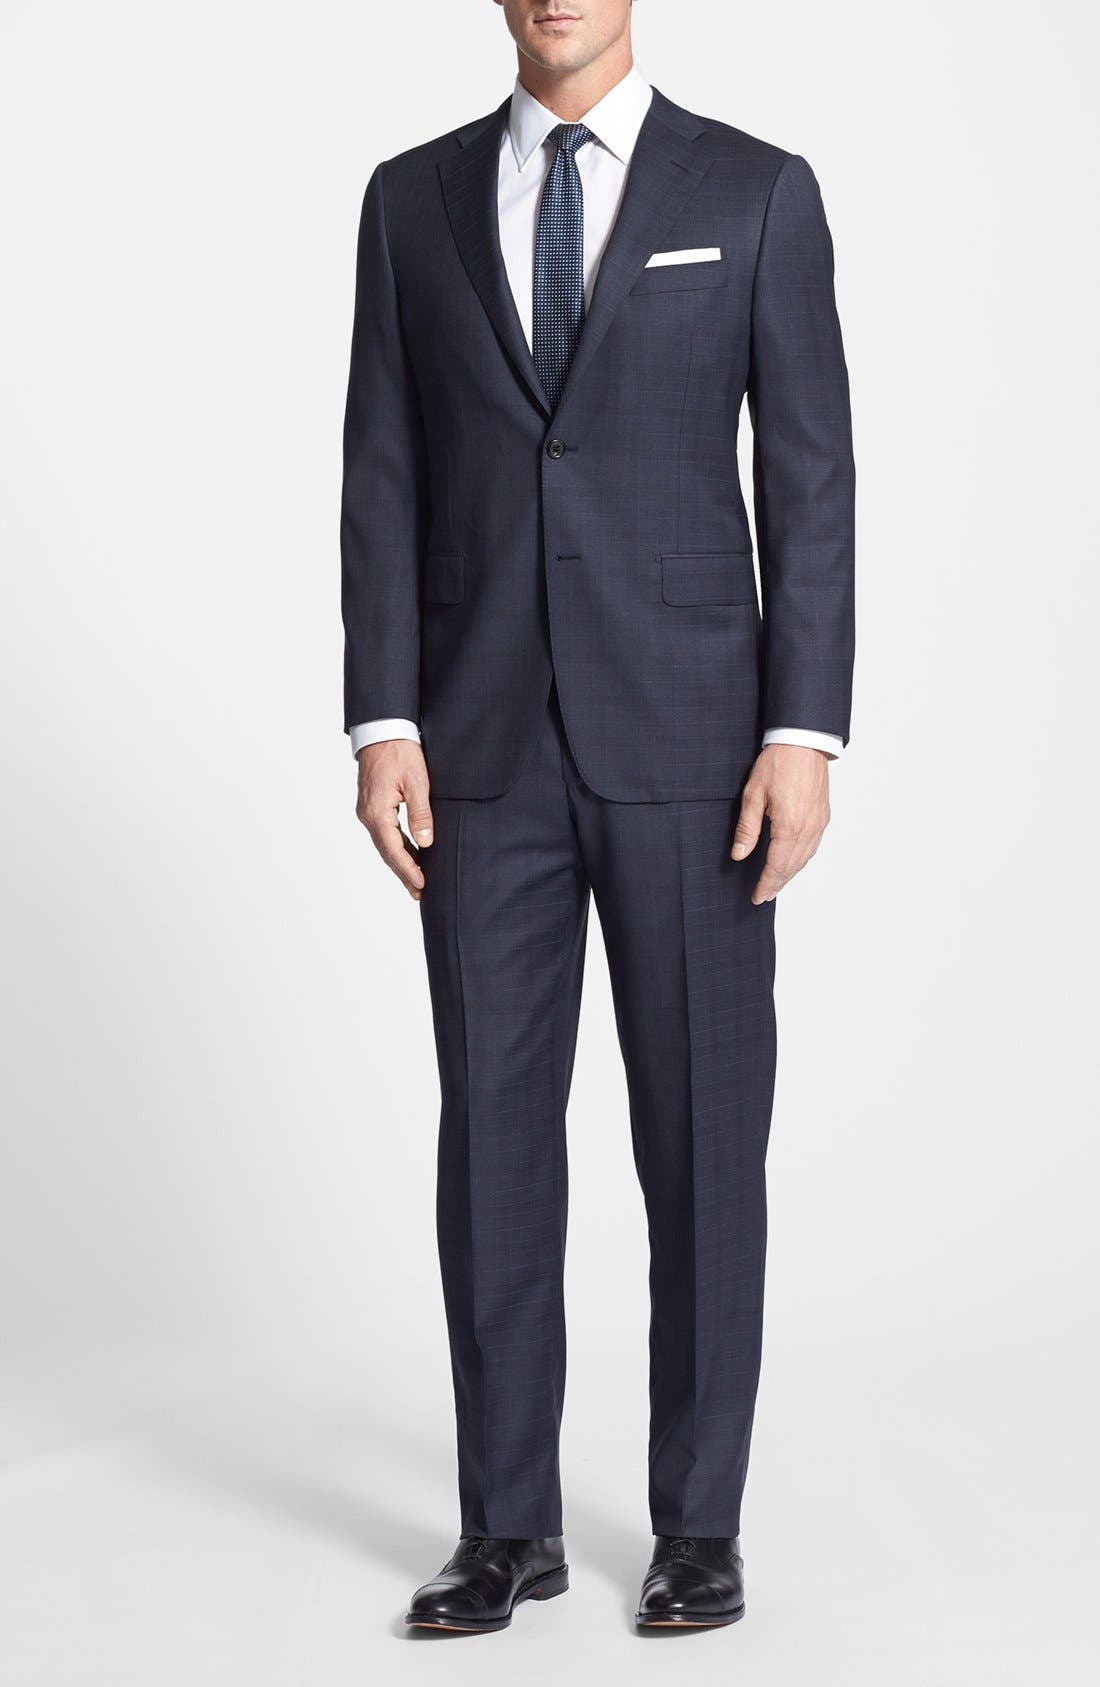 Main Image - Hickey Freeman Classic Fit Plaid Suit